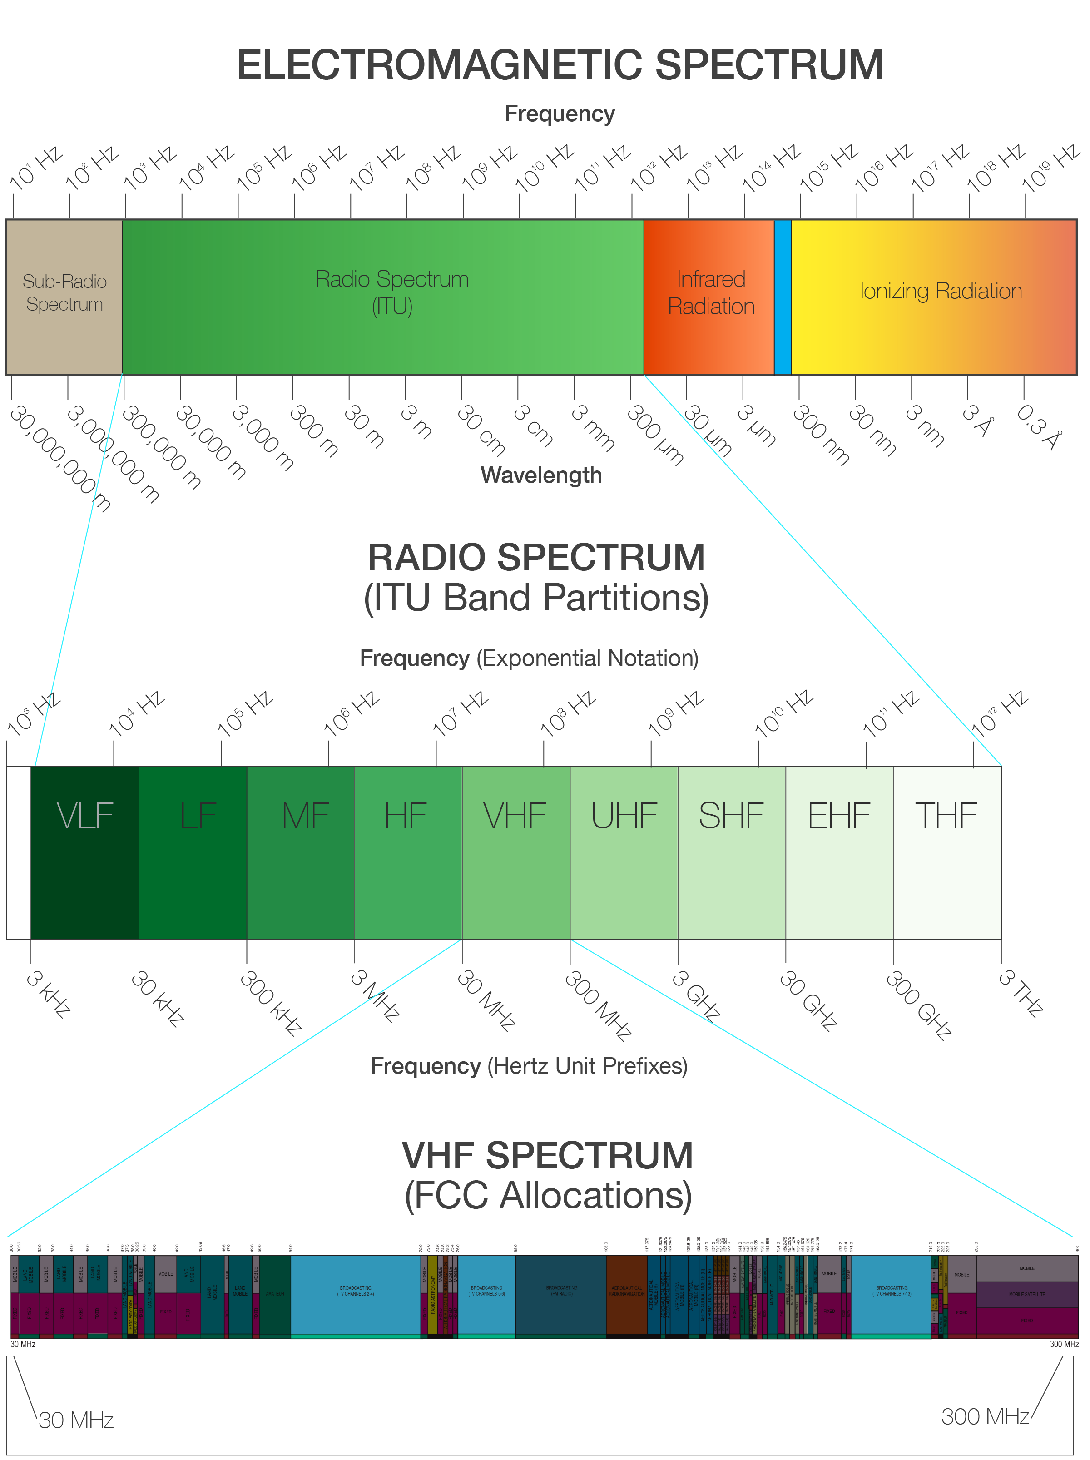 Electromagnetic-Spectrum_vhf-02-2.png